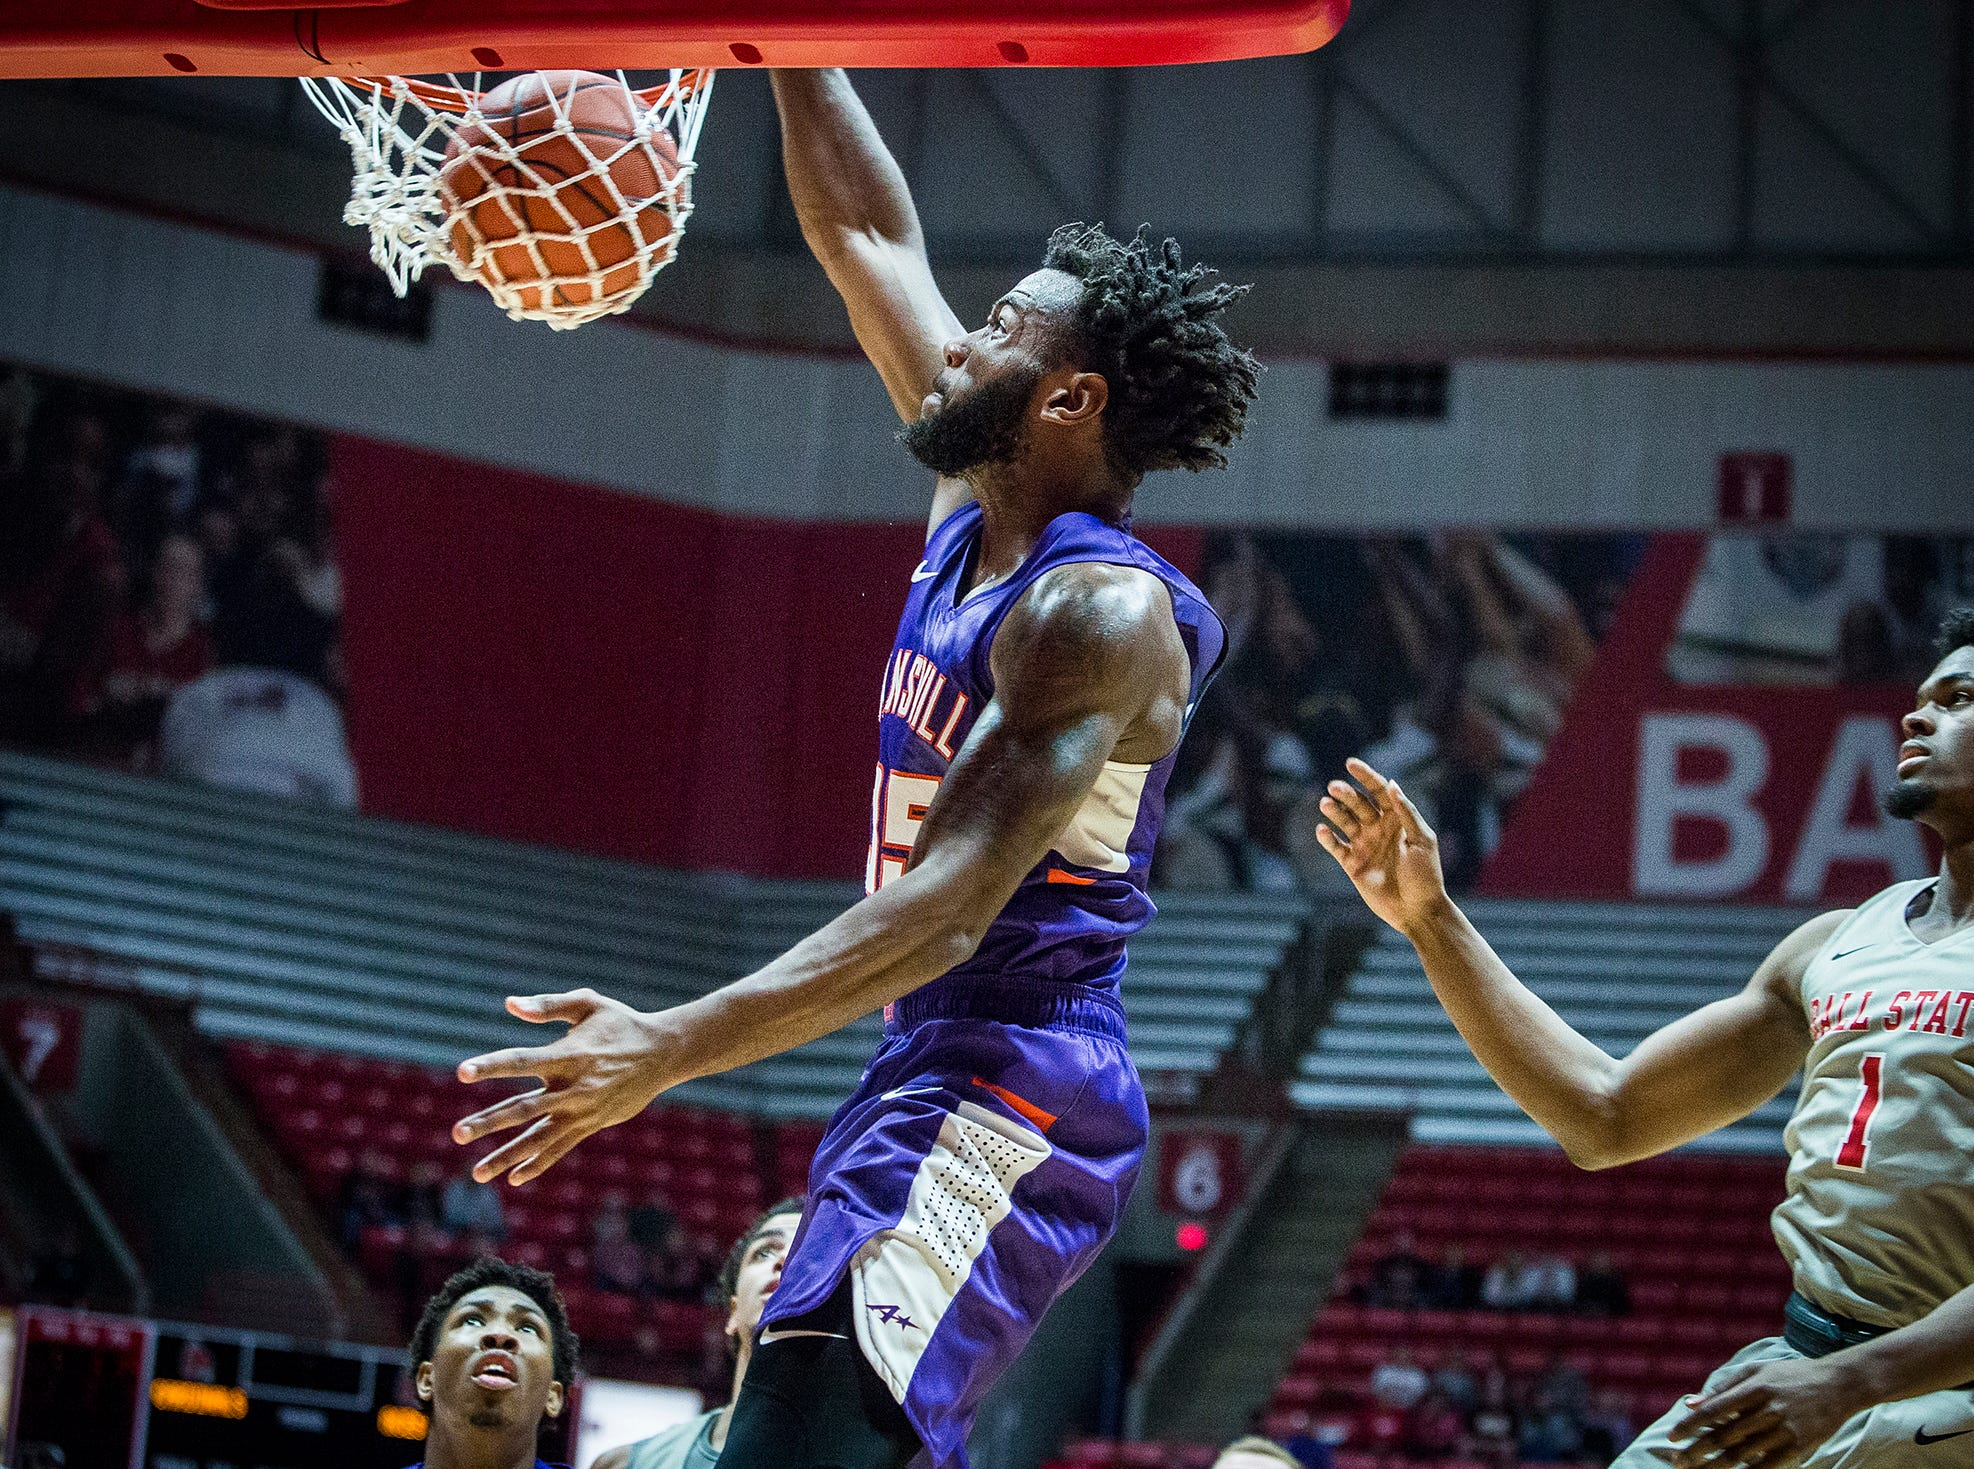 Evansville's John Hall dunks against Ball State's defense during their game at Worthen Arena Saturday, Nov. 24, 2018.